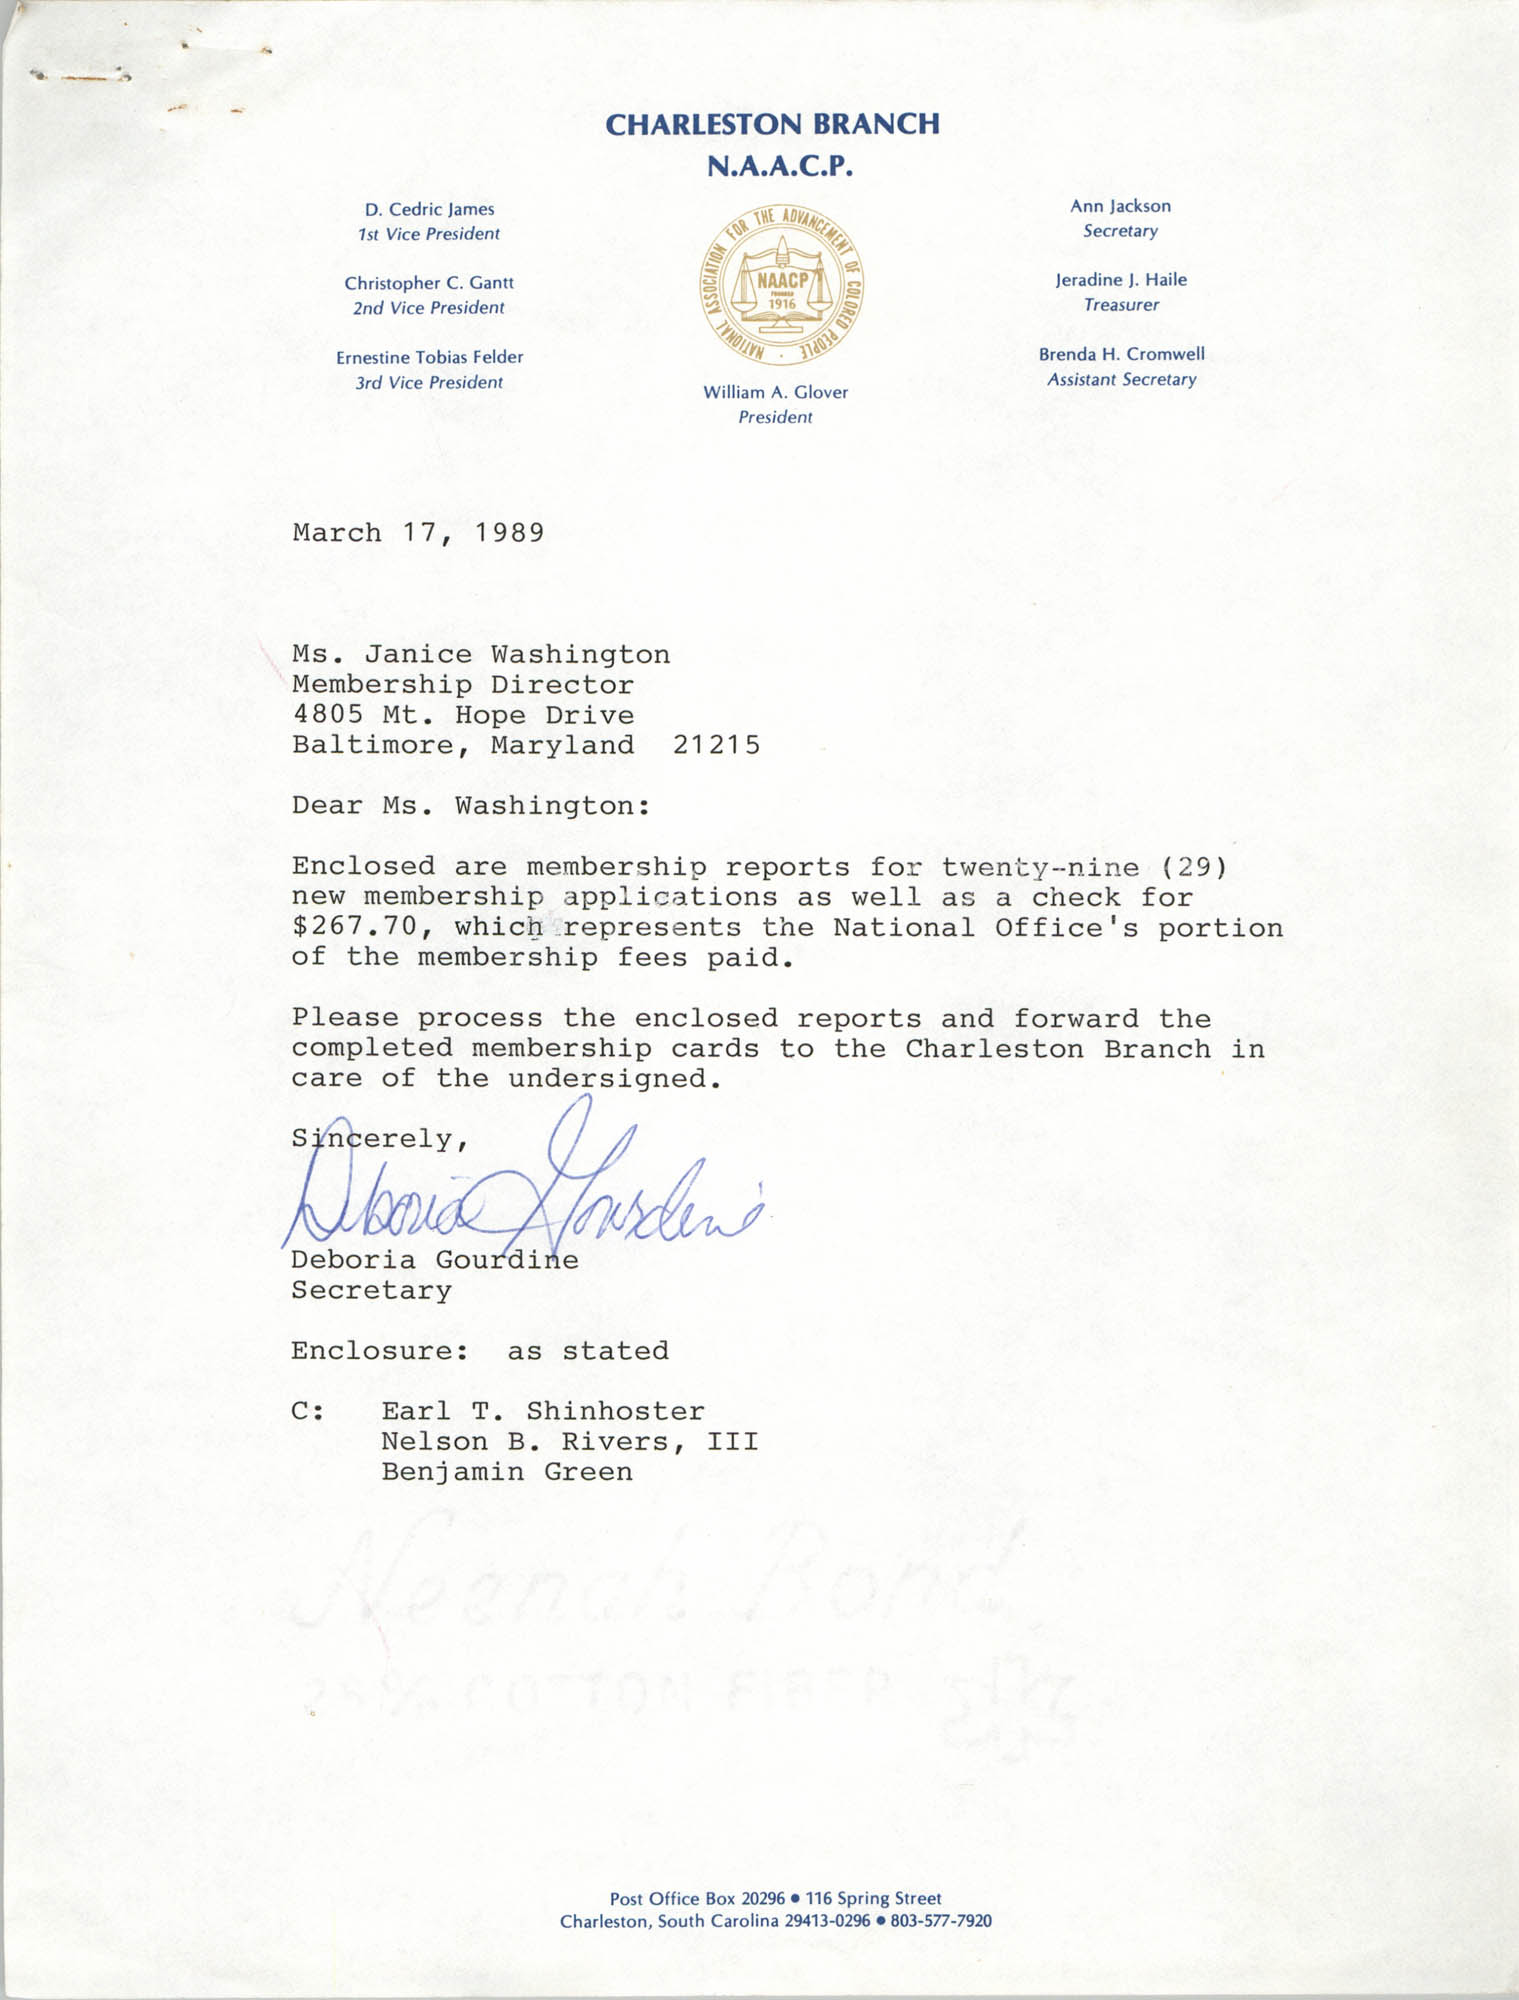 Letter from Deboria D. Gourdine to Janice Washington, NAACP, March 17, 1989